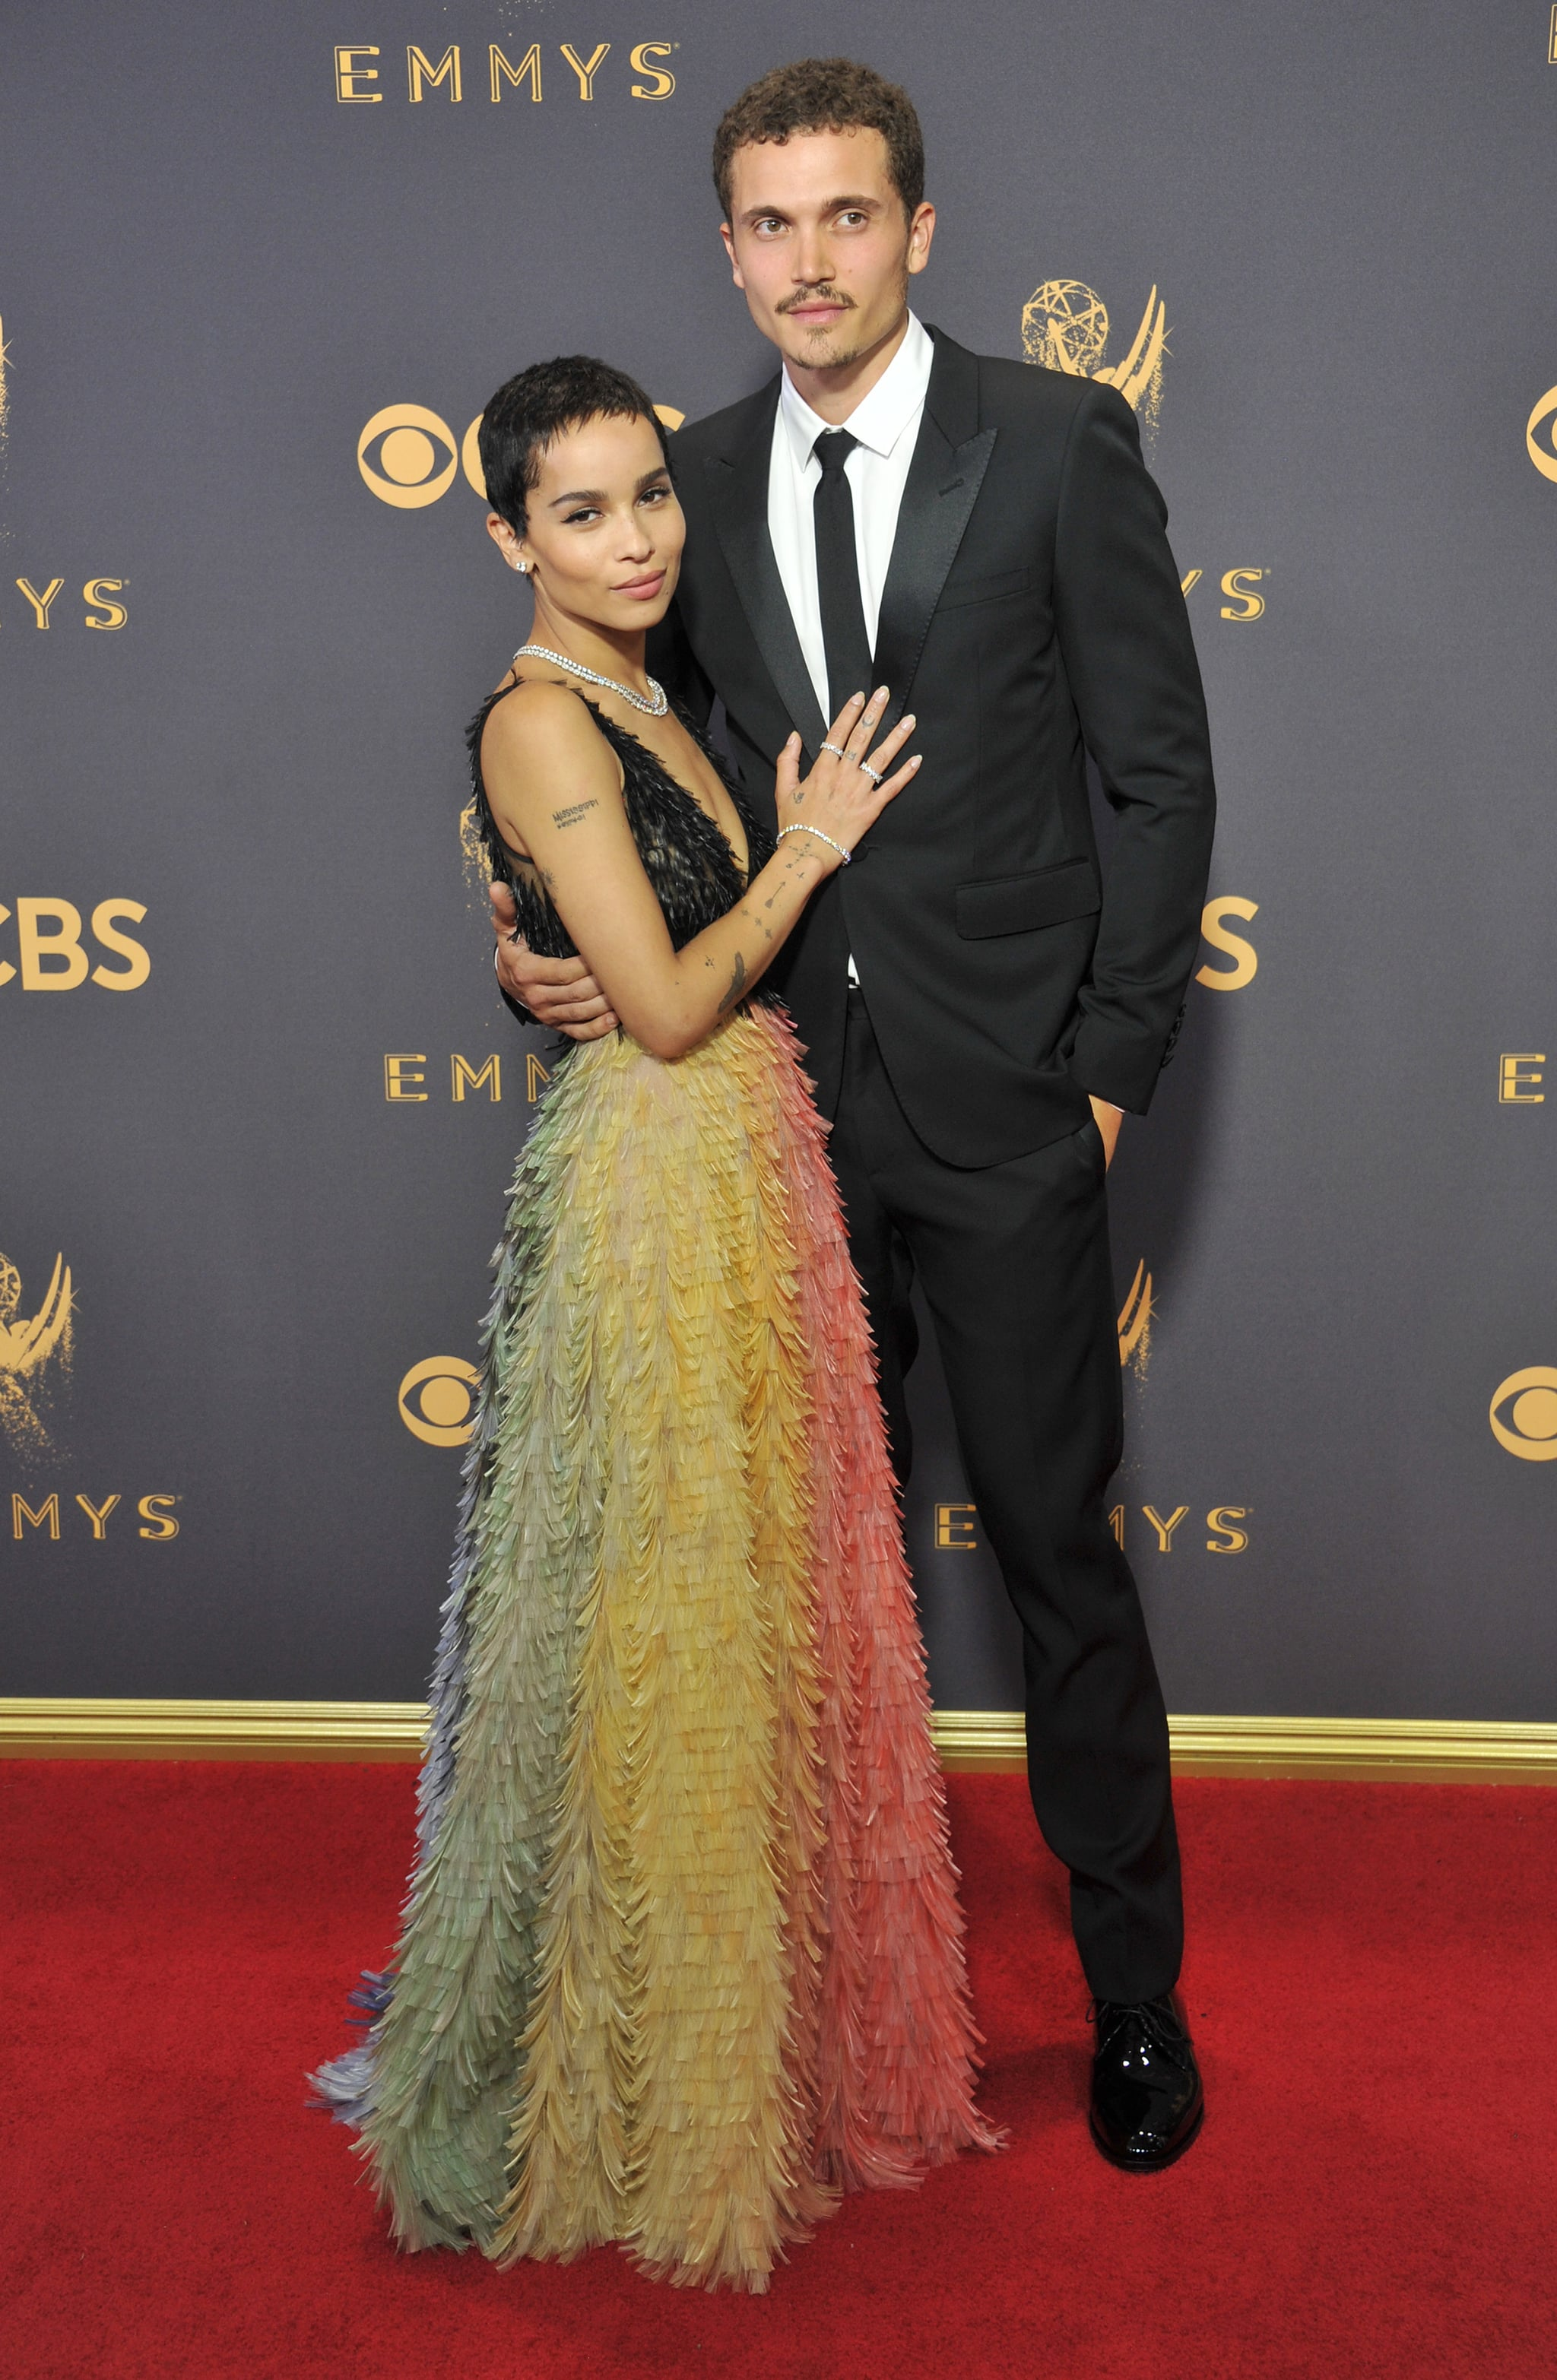 LOS ANGELES, CA - SEPTEMBER 17:  Zoe Kravitz and Karl Glusman arrive at the 69th Annual Primetime Emmy Awards at Microsoft Theatre on September 17, 2017 in Los Angeles, California.  (Photo by Gregg DeGuire/Getty Images)